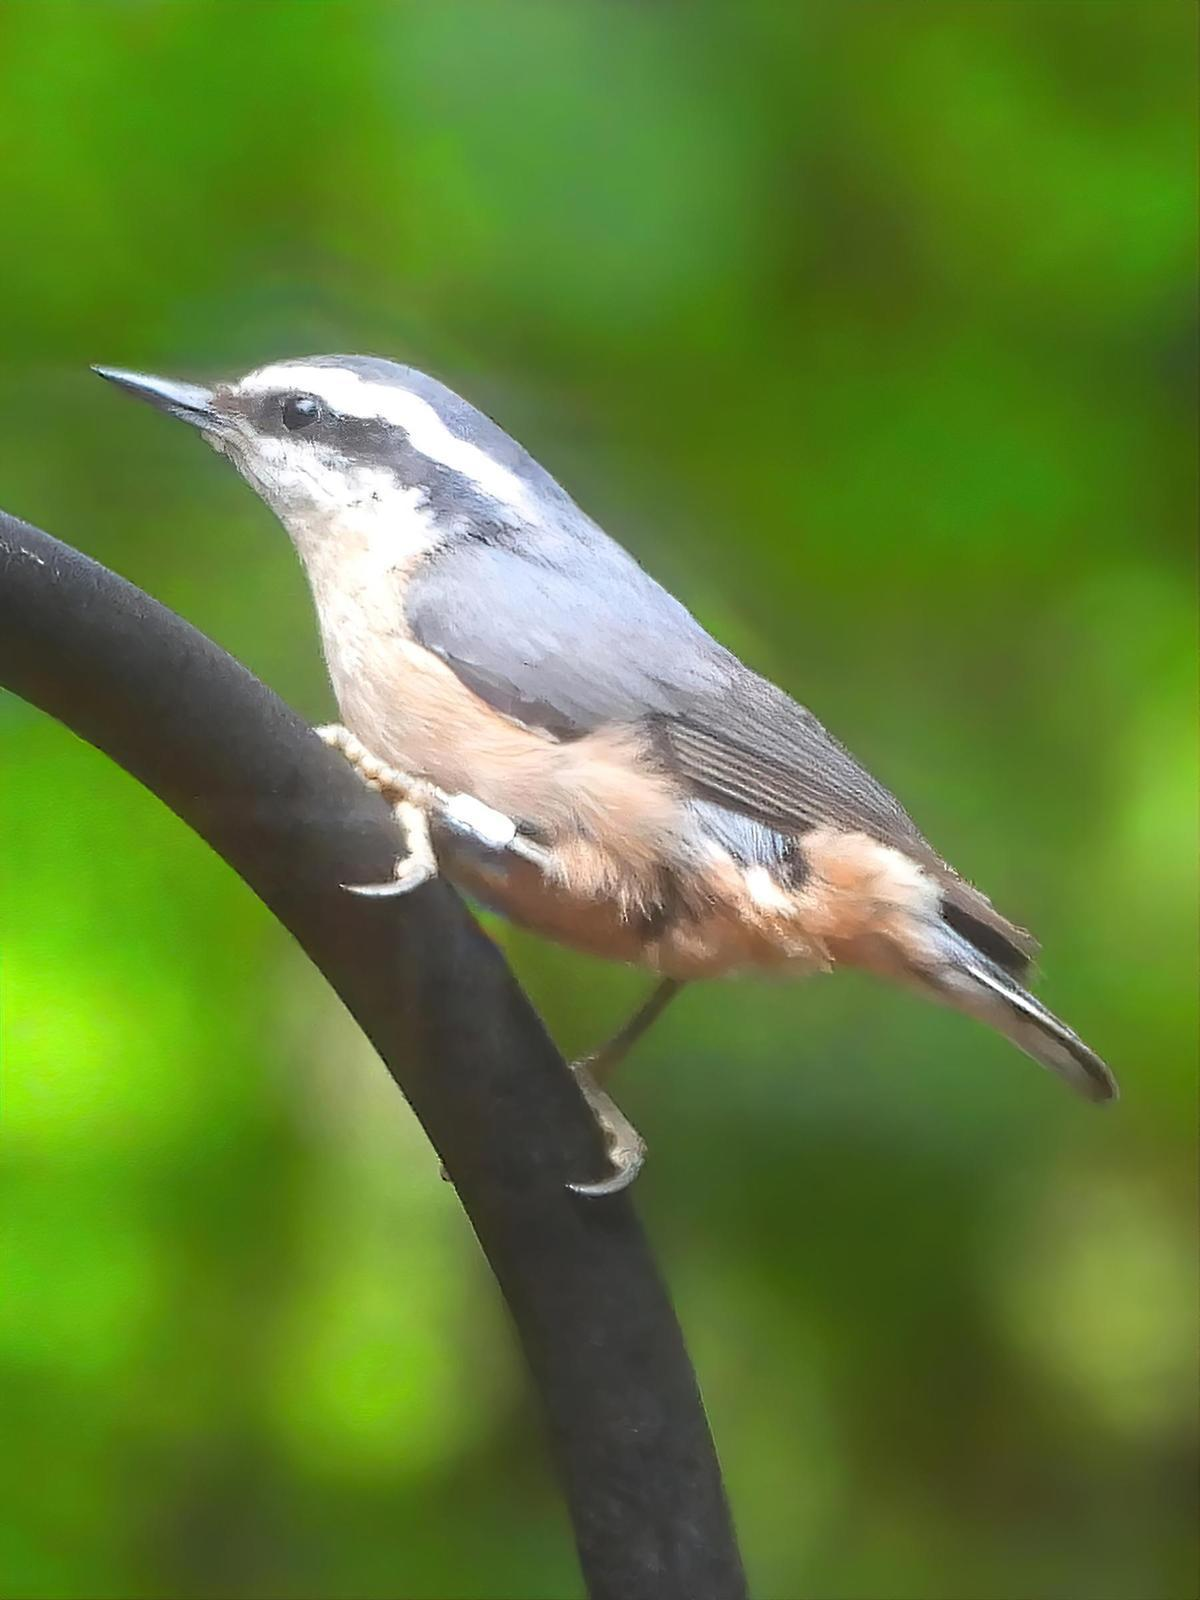 Red-breasted Nuthatch Photo by Dan Tallman